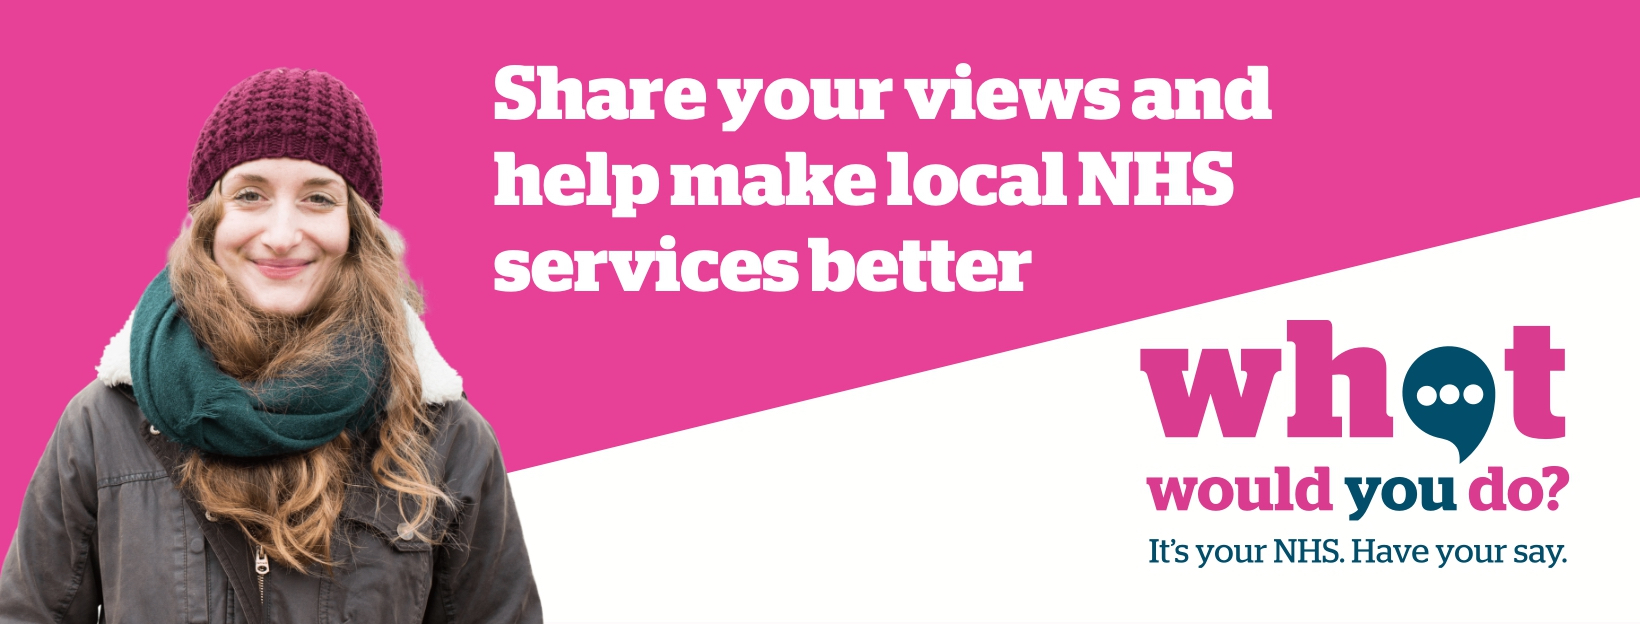 Have your say to make NHS services better